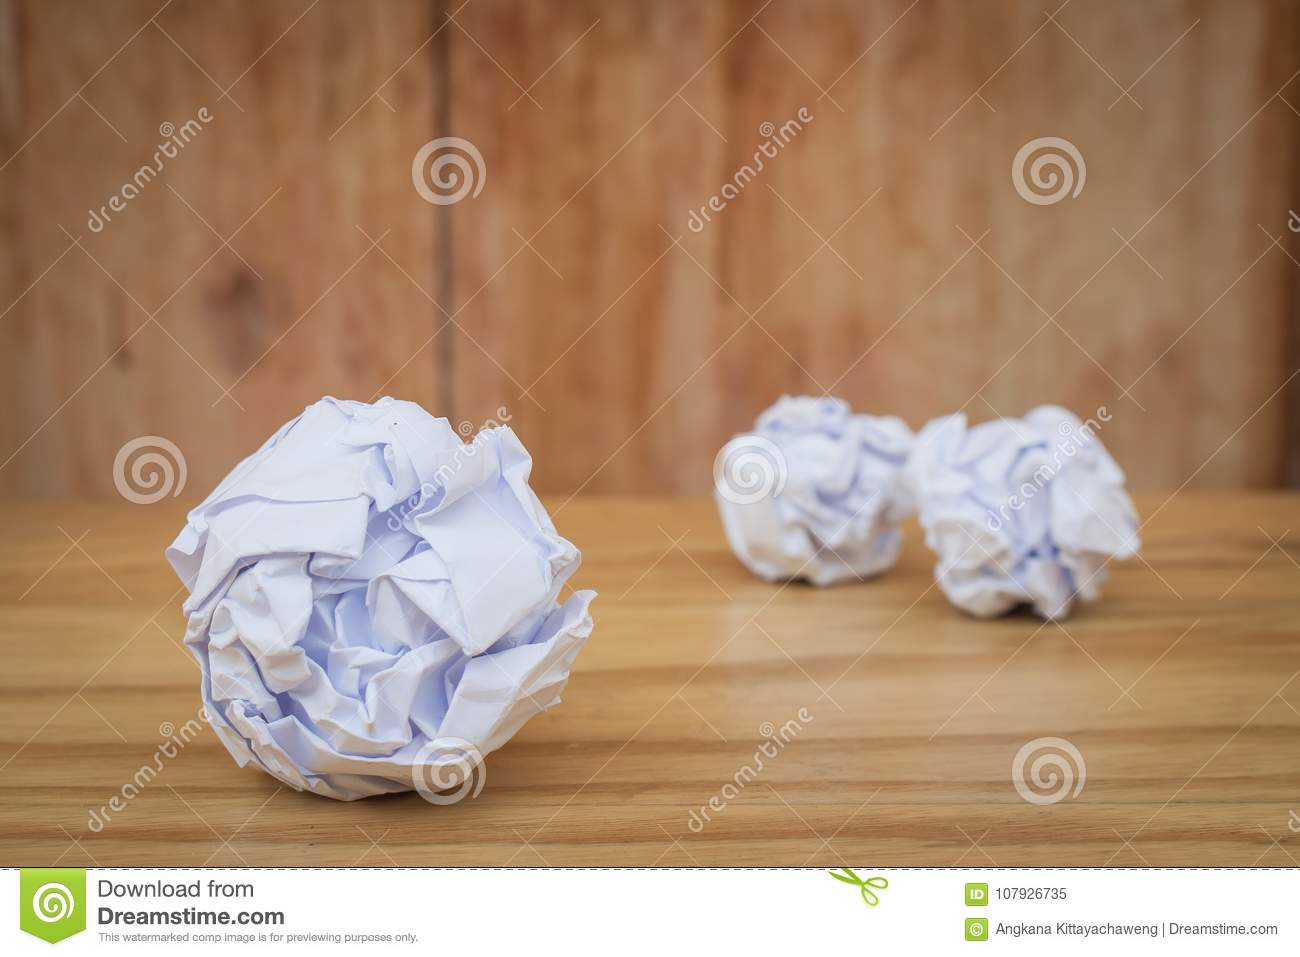 Business Creative and Idea Concept : Close up many white crumpled paper ball put on wooden foor.